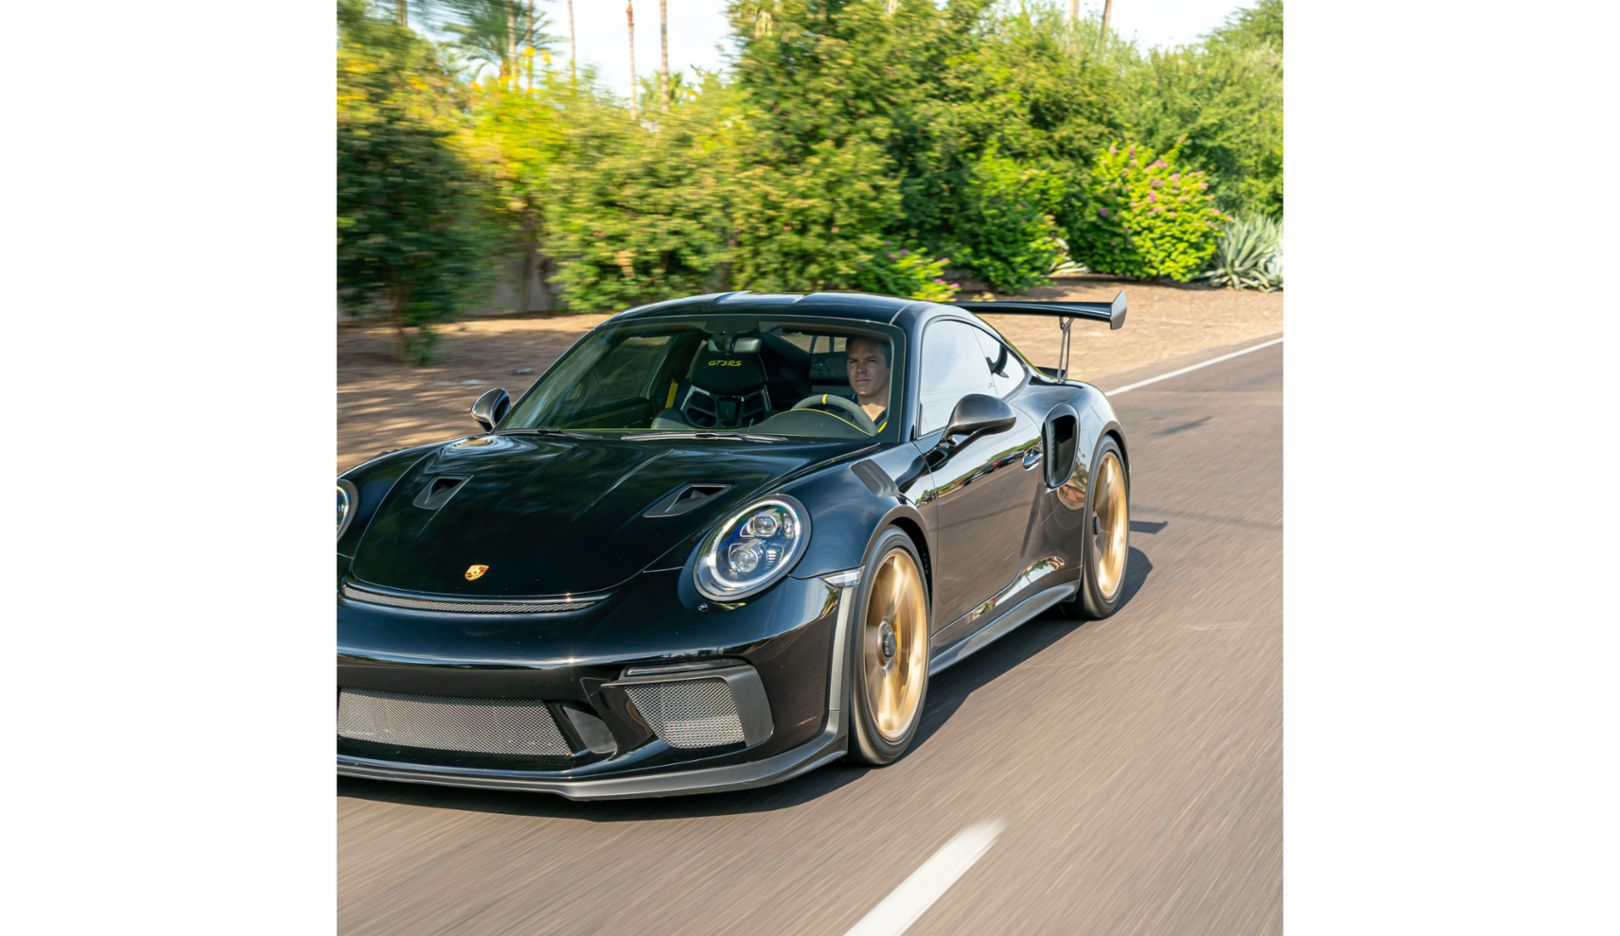 "His 911: Casey enjoys every ride in his GT3 RS, generation 991: ""I like it when a drive becomes an experience."""